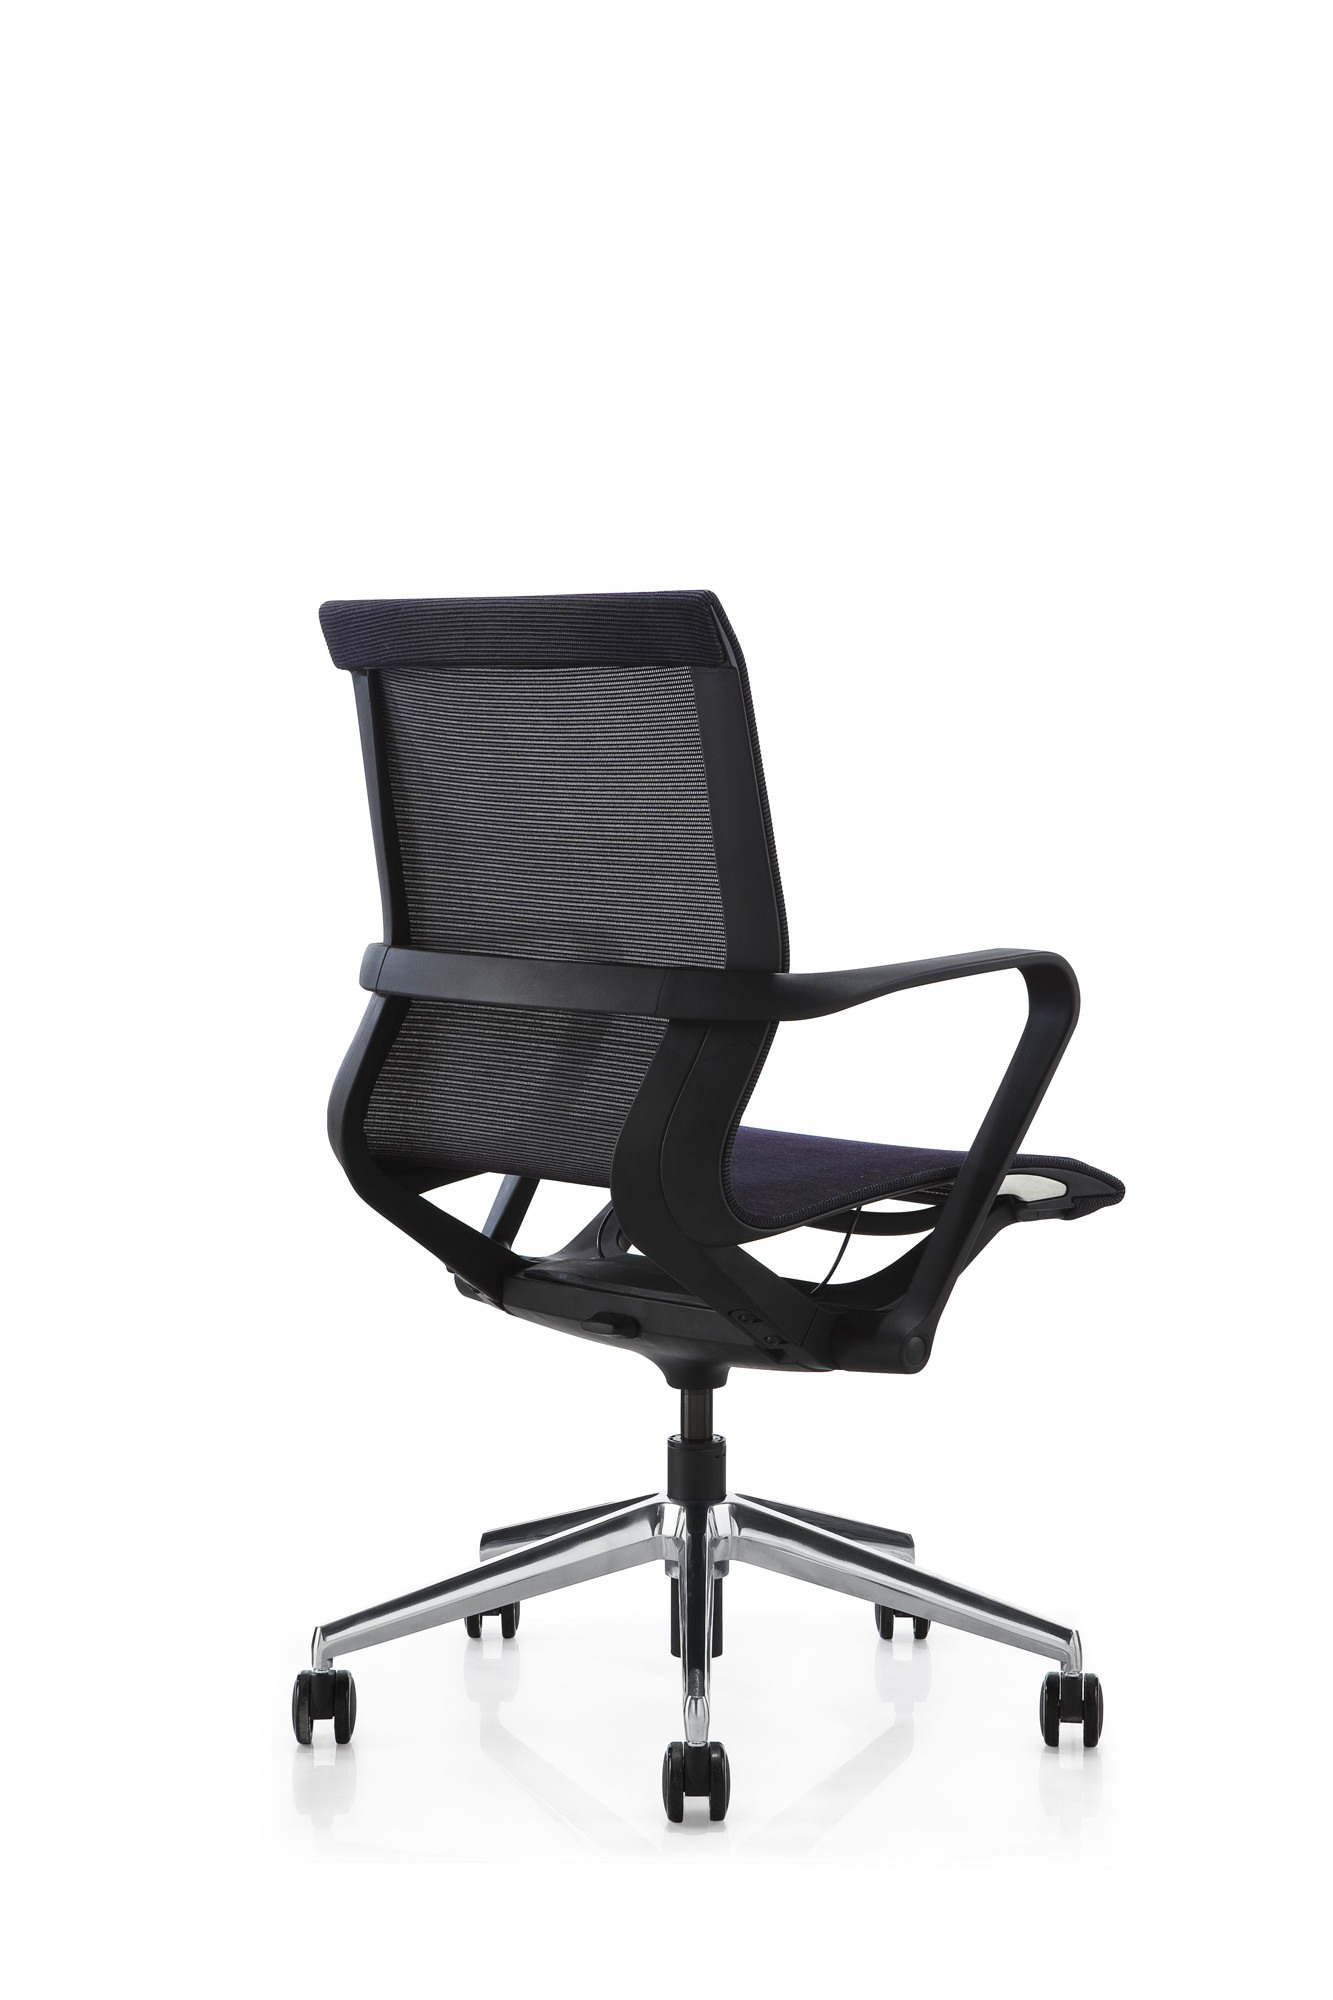 Hilo Series Ergonomic Office Chair Low Back Mesh Chair – Hydraulic  Adjustable Height and Seat, Tilt Lock, Extensive Lumbar Support Mesh Desk  Office